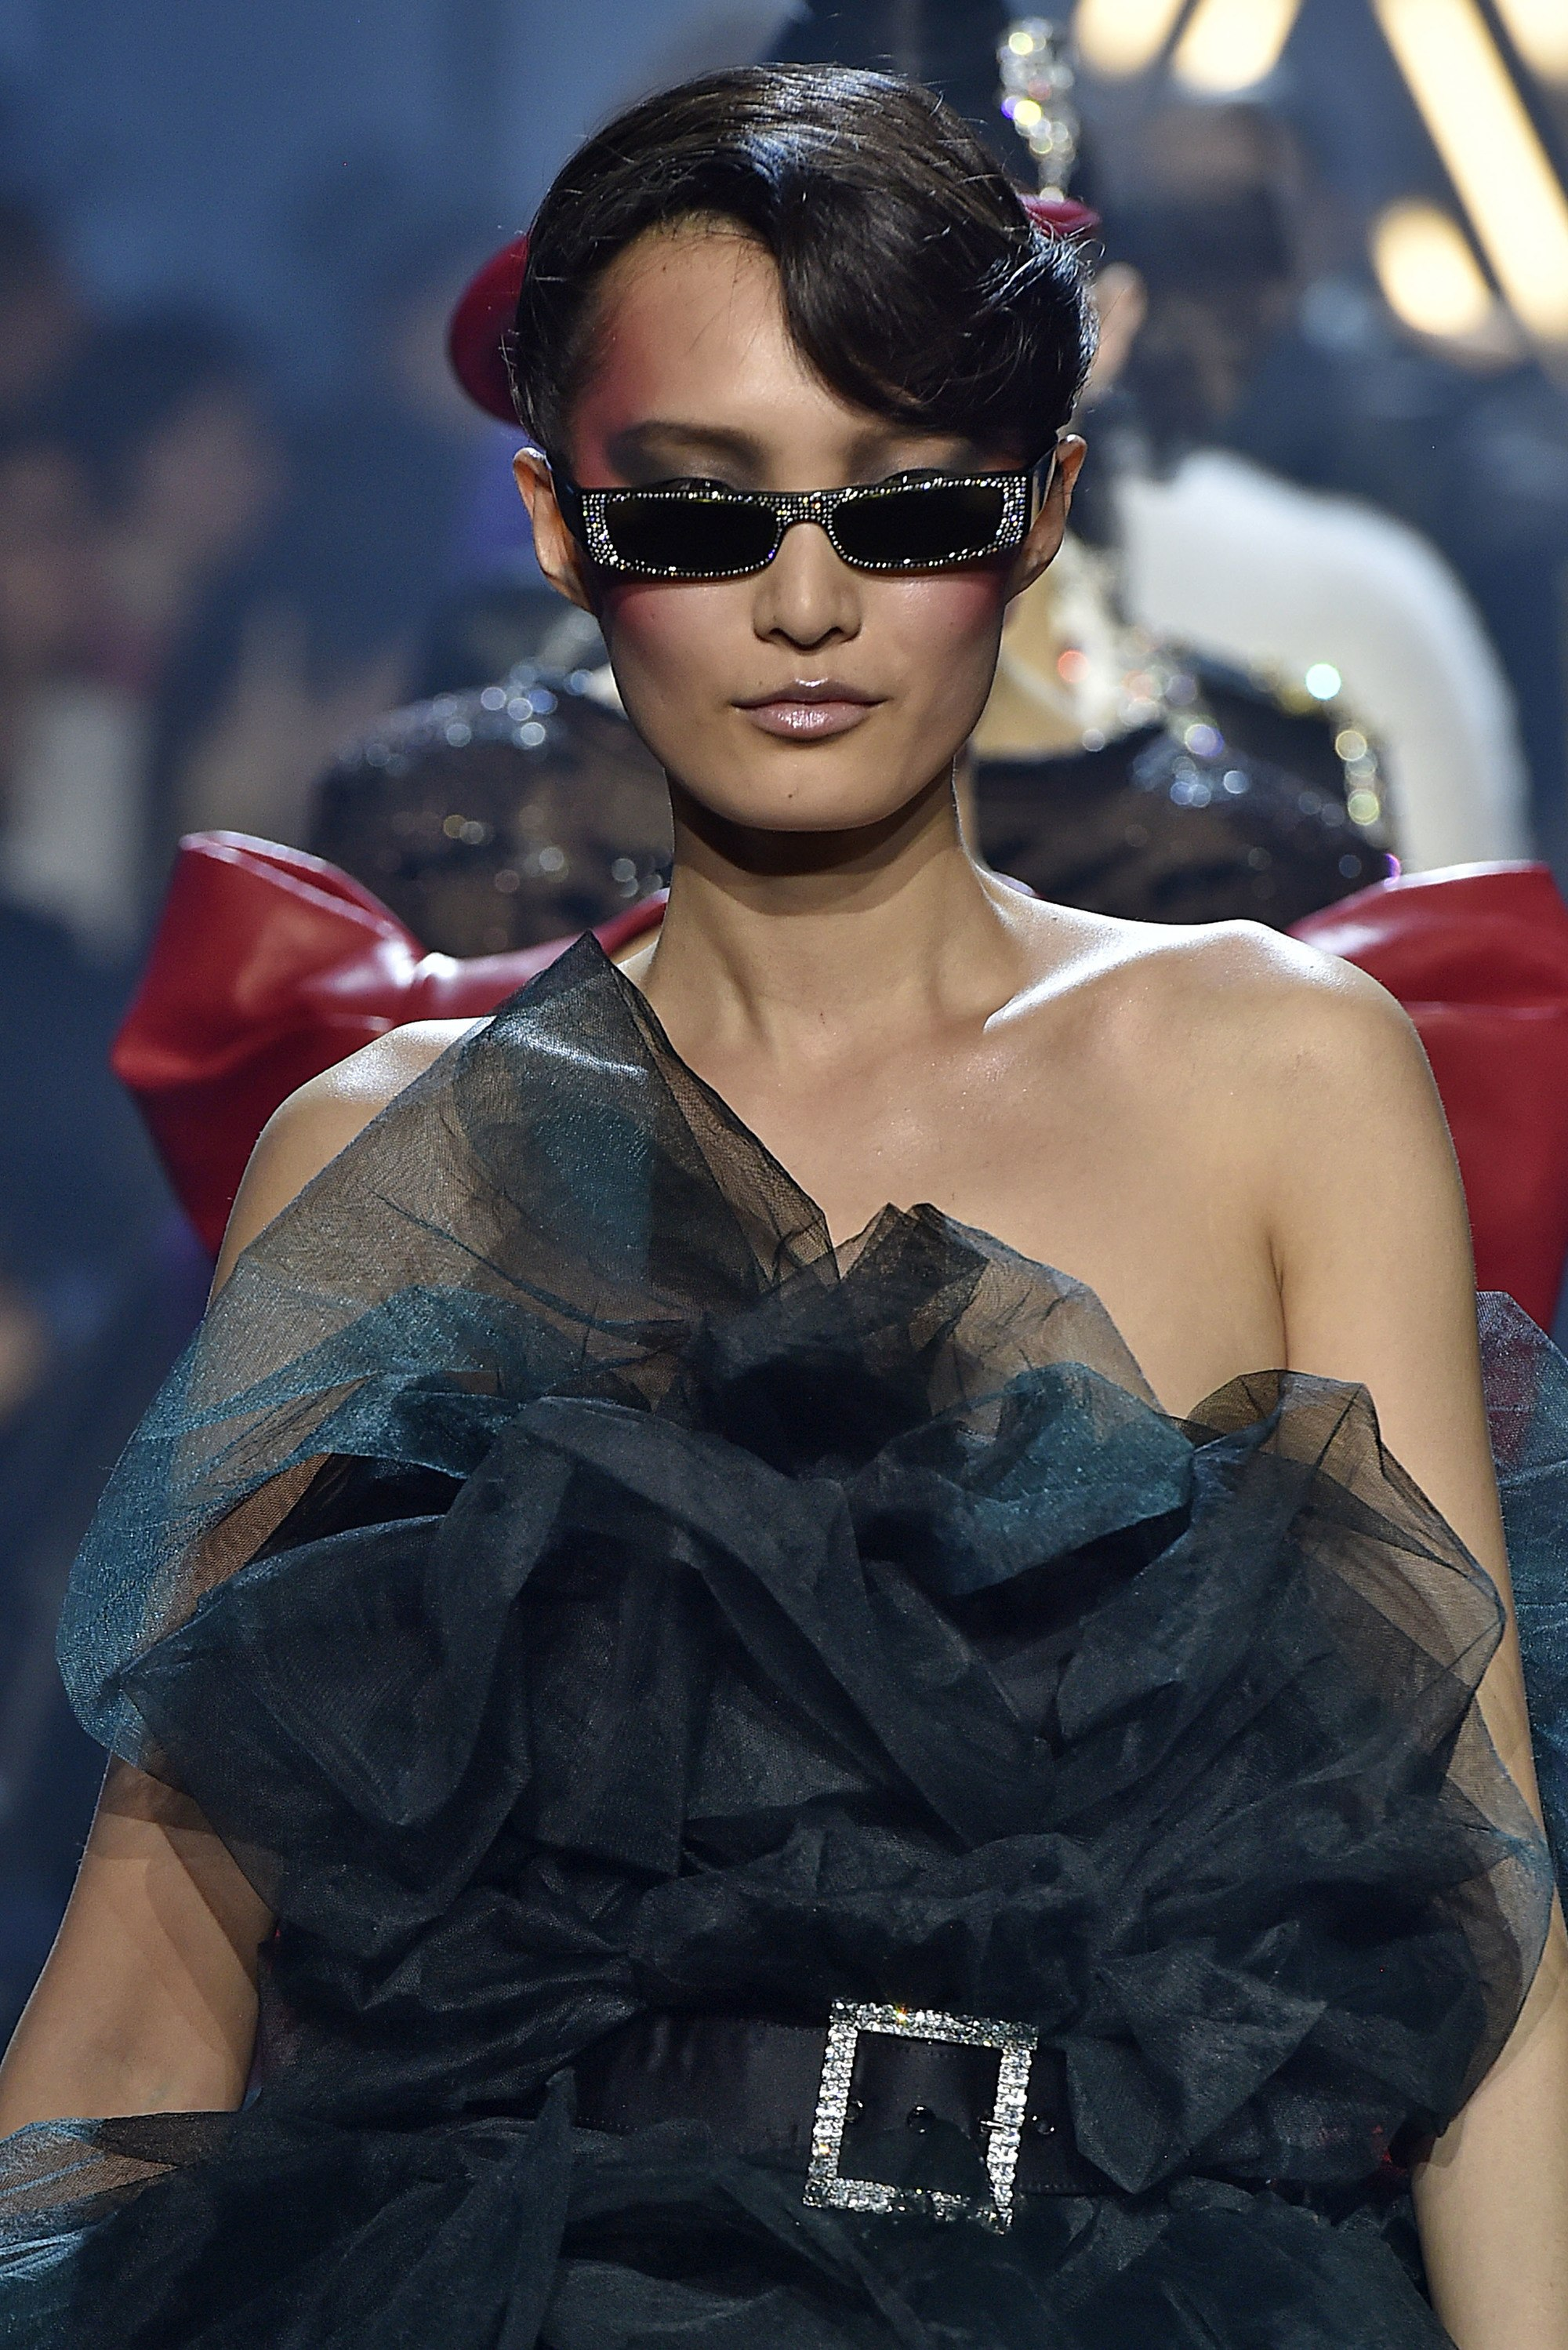 model with brown hair in elegant updo wearing small sunglasses on runway